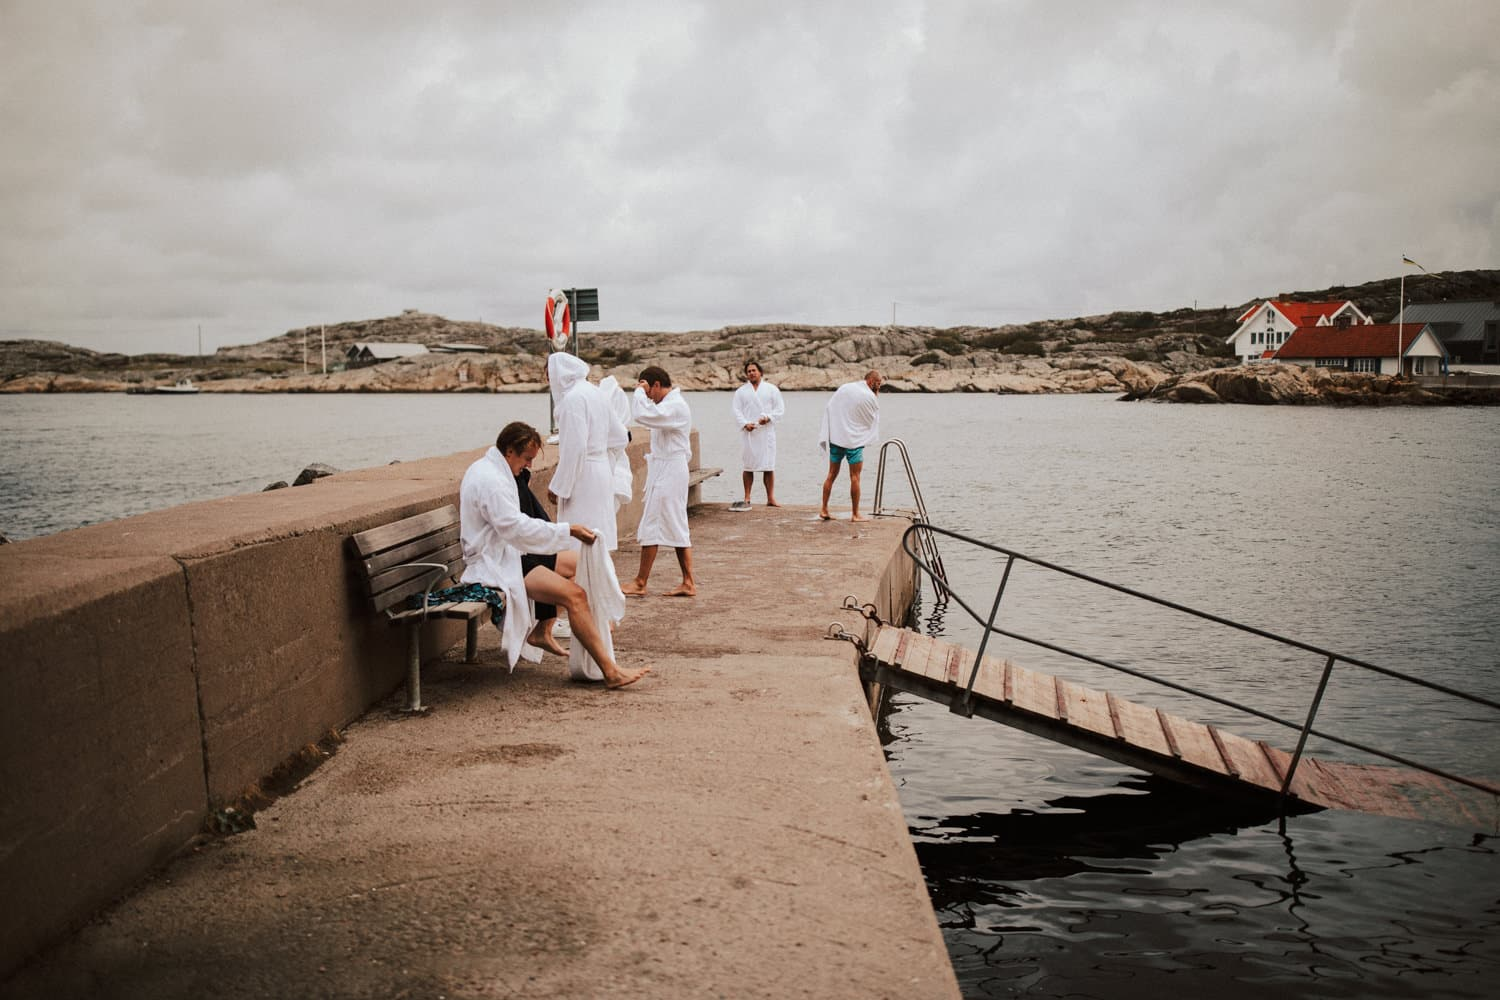 The groom and his guests are wearing white bathrobes and are standing on a platform next to the ocean.